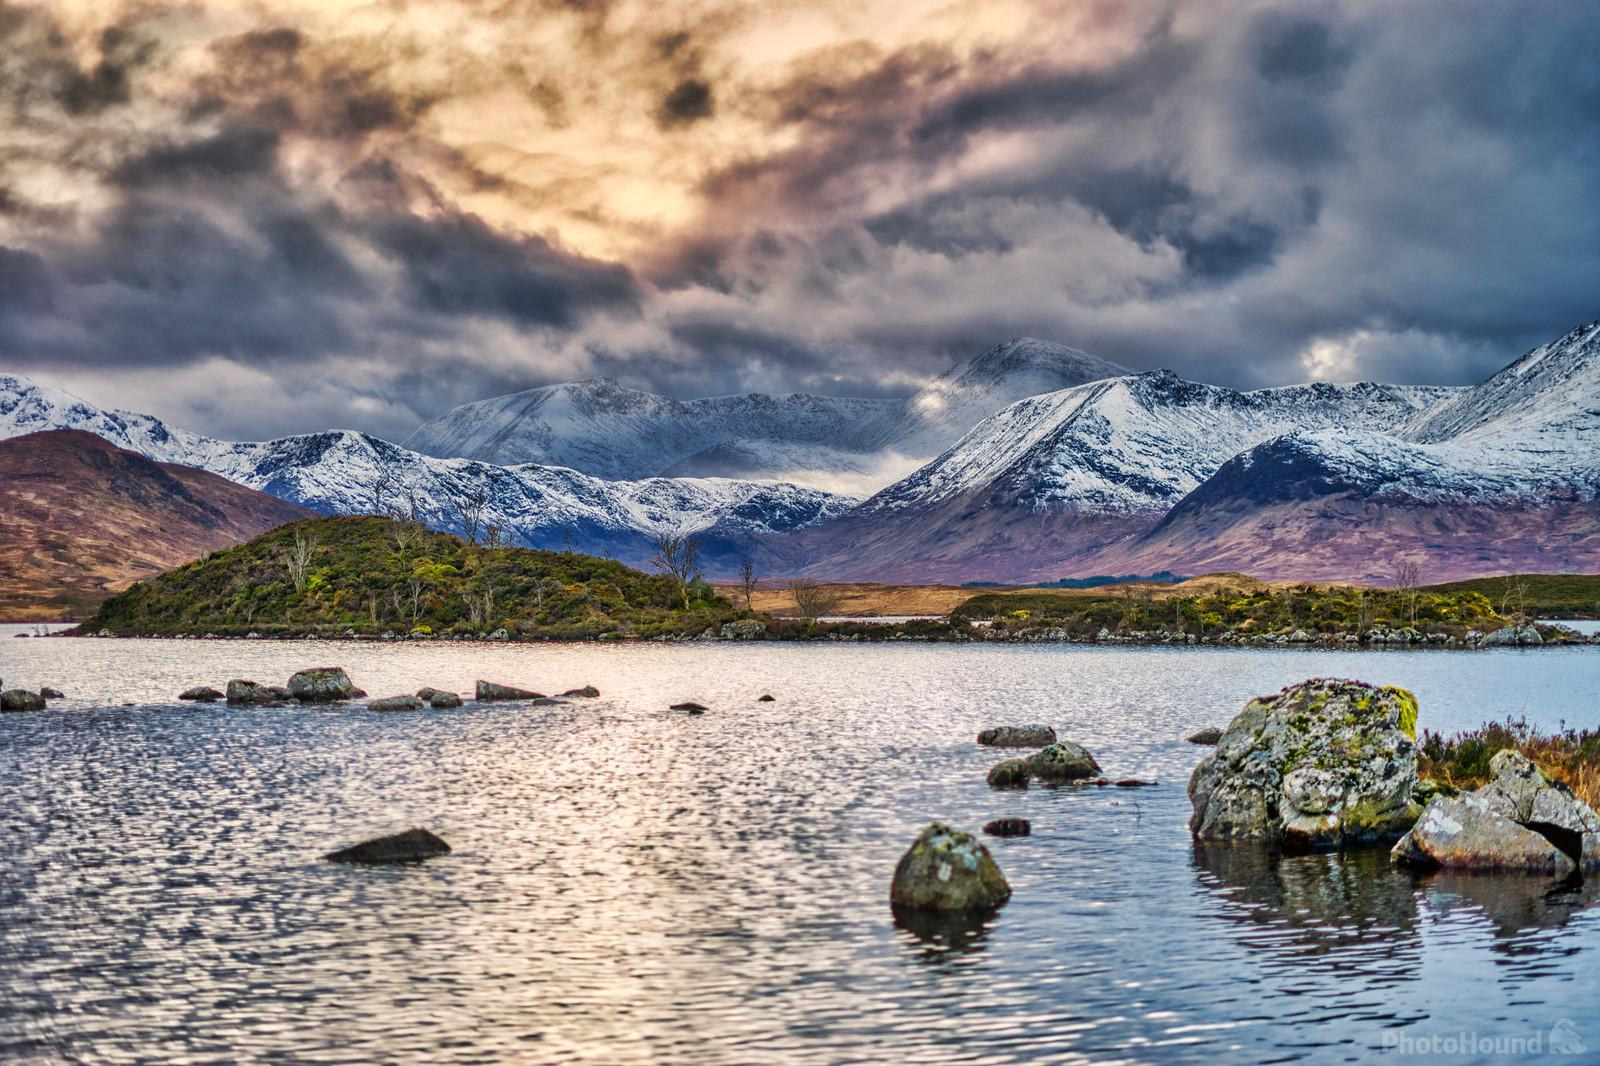 Sunset over the snowy mountains behind Lochan na h-Achlaise